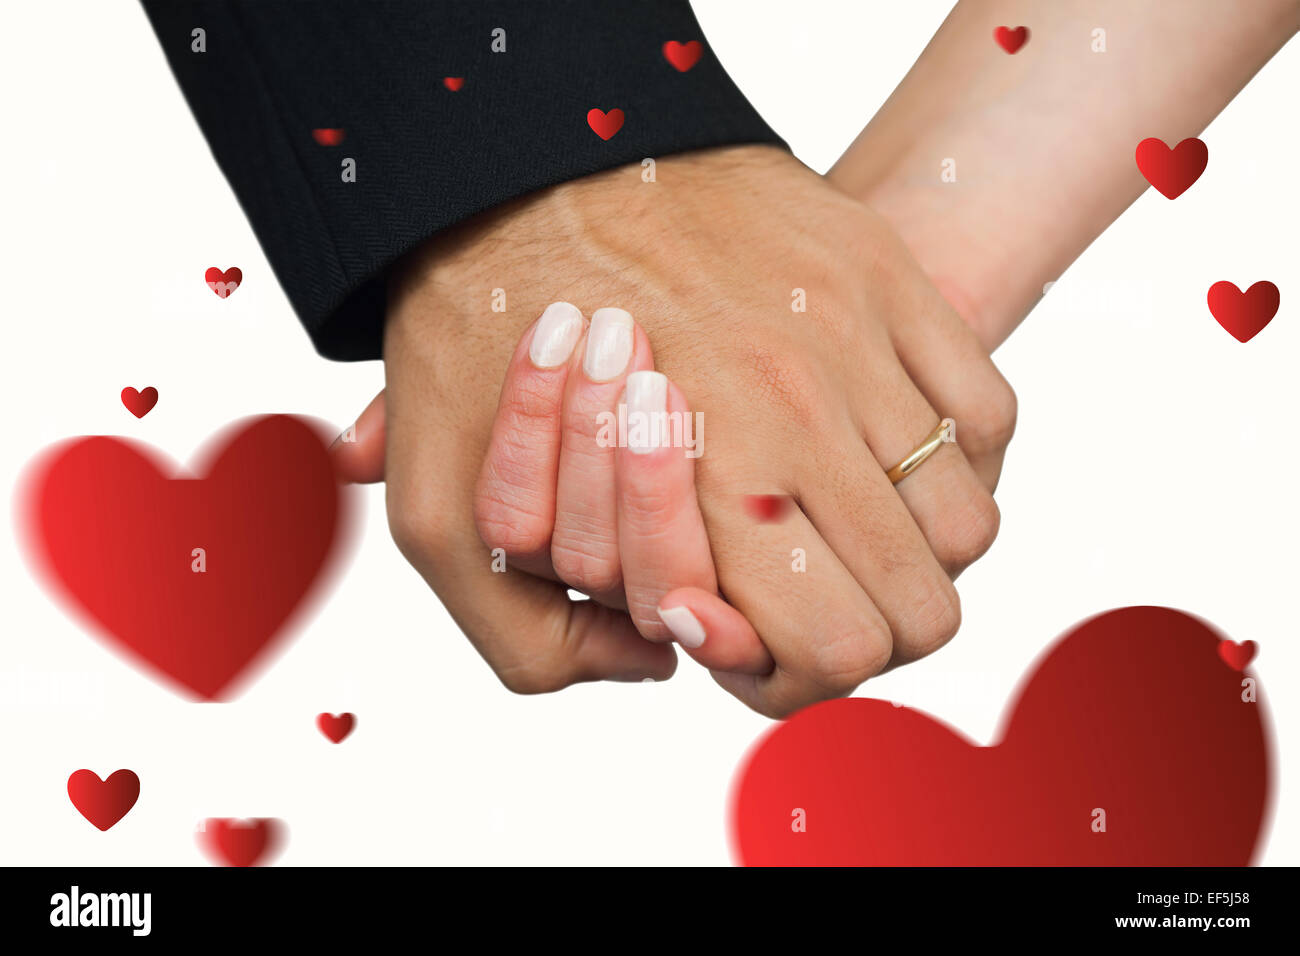 Composite image of newlyweds holding hands close up - Stock Image